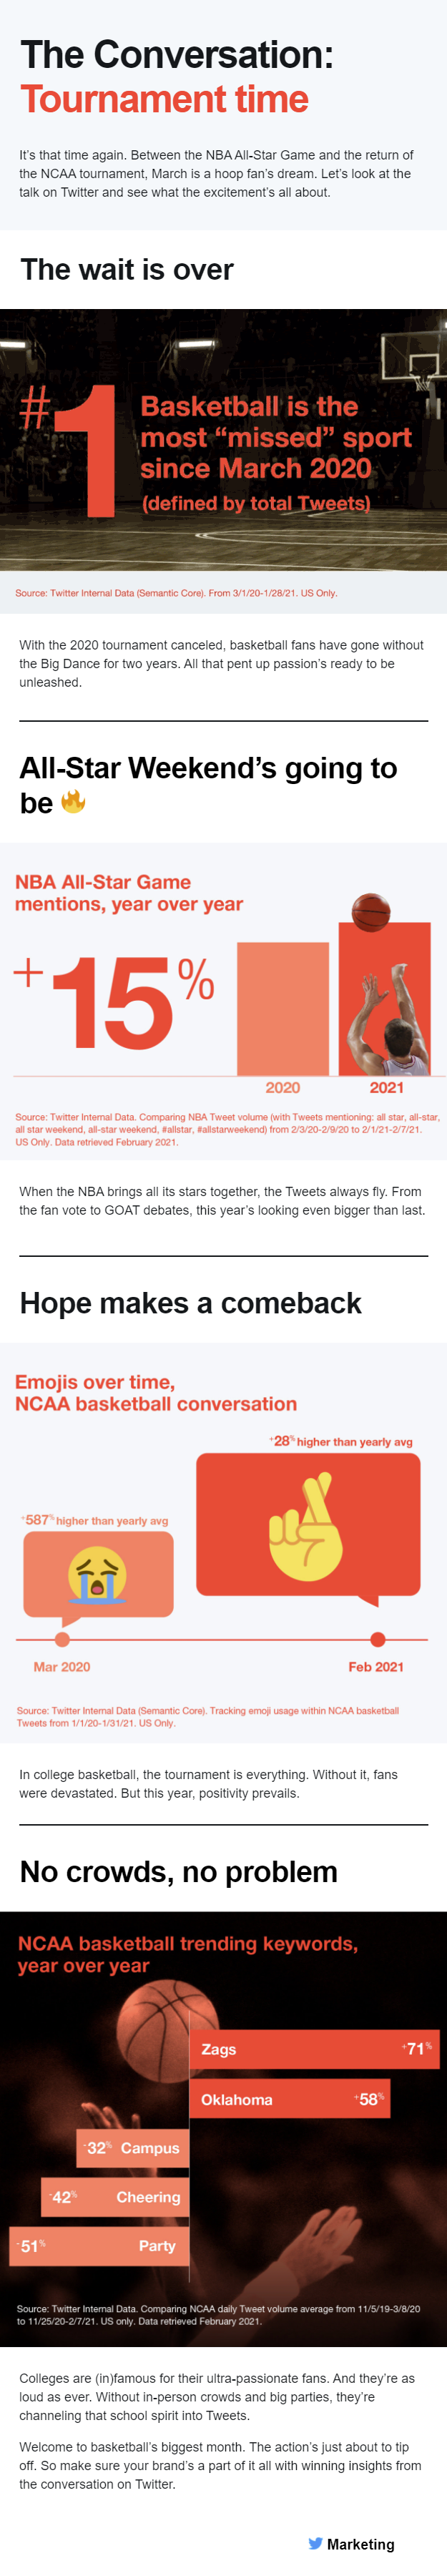 Twitter basketball discussion stats